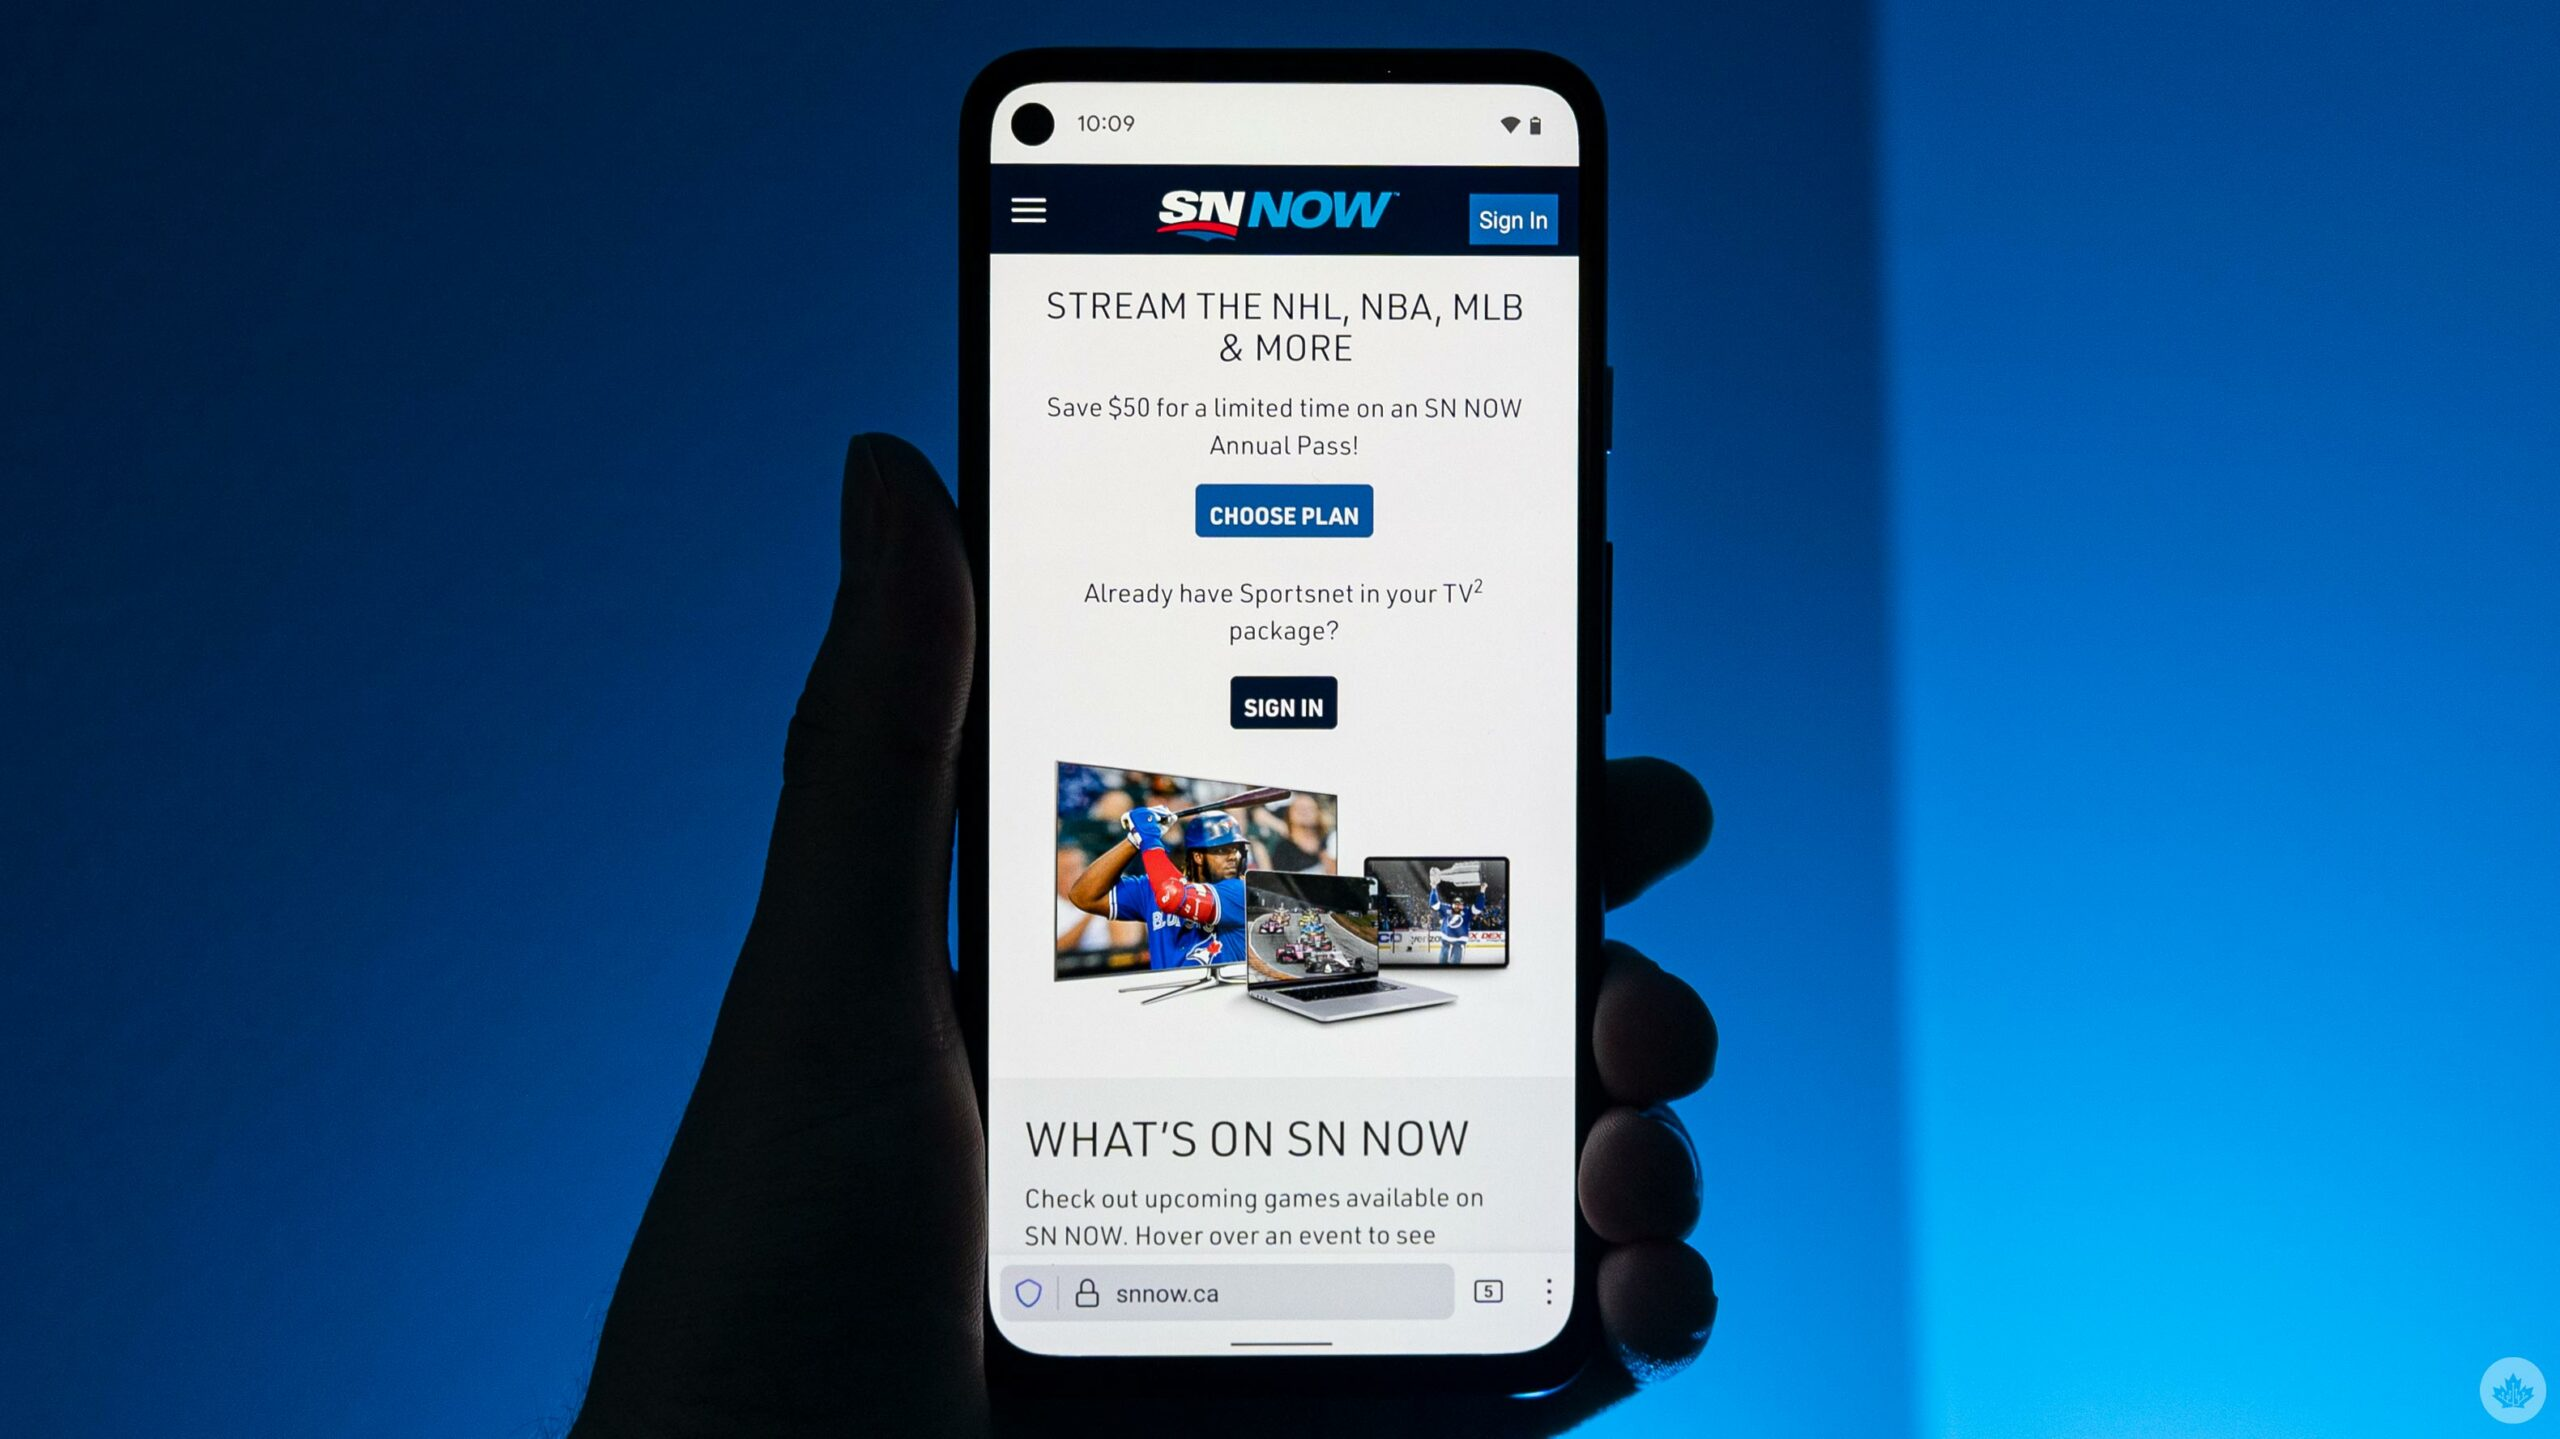 Sportsnew SN Now website on a smartphone